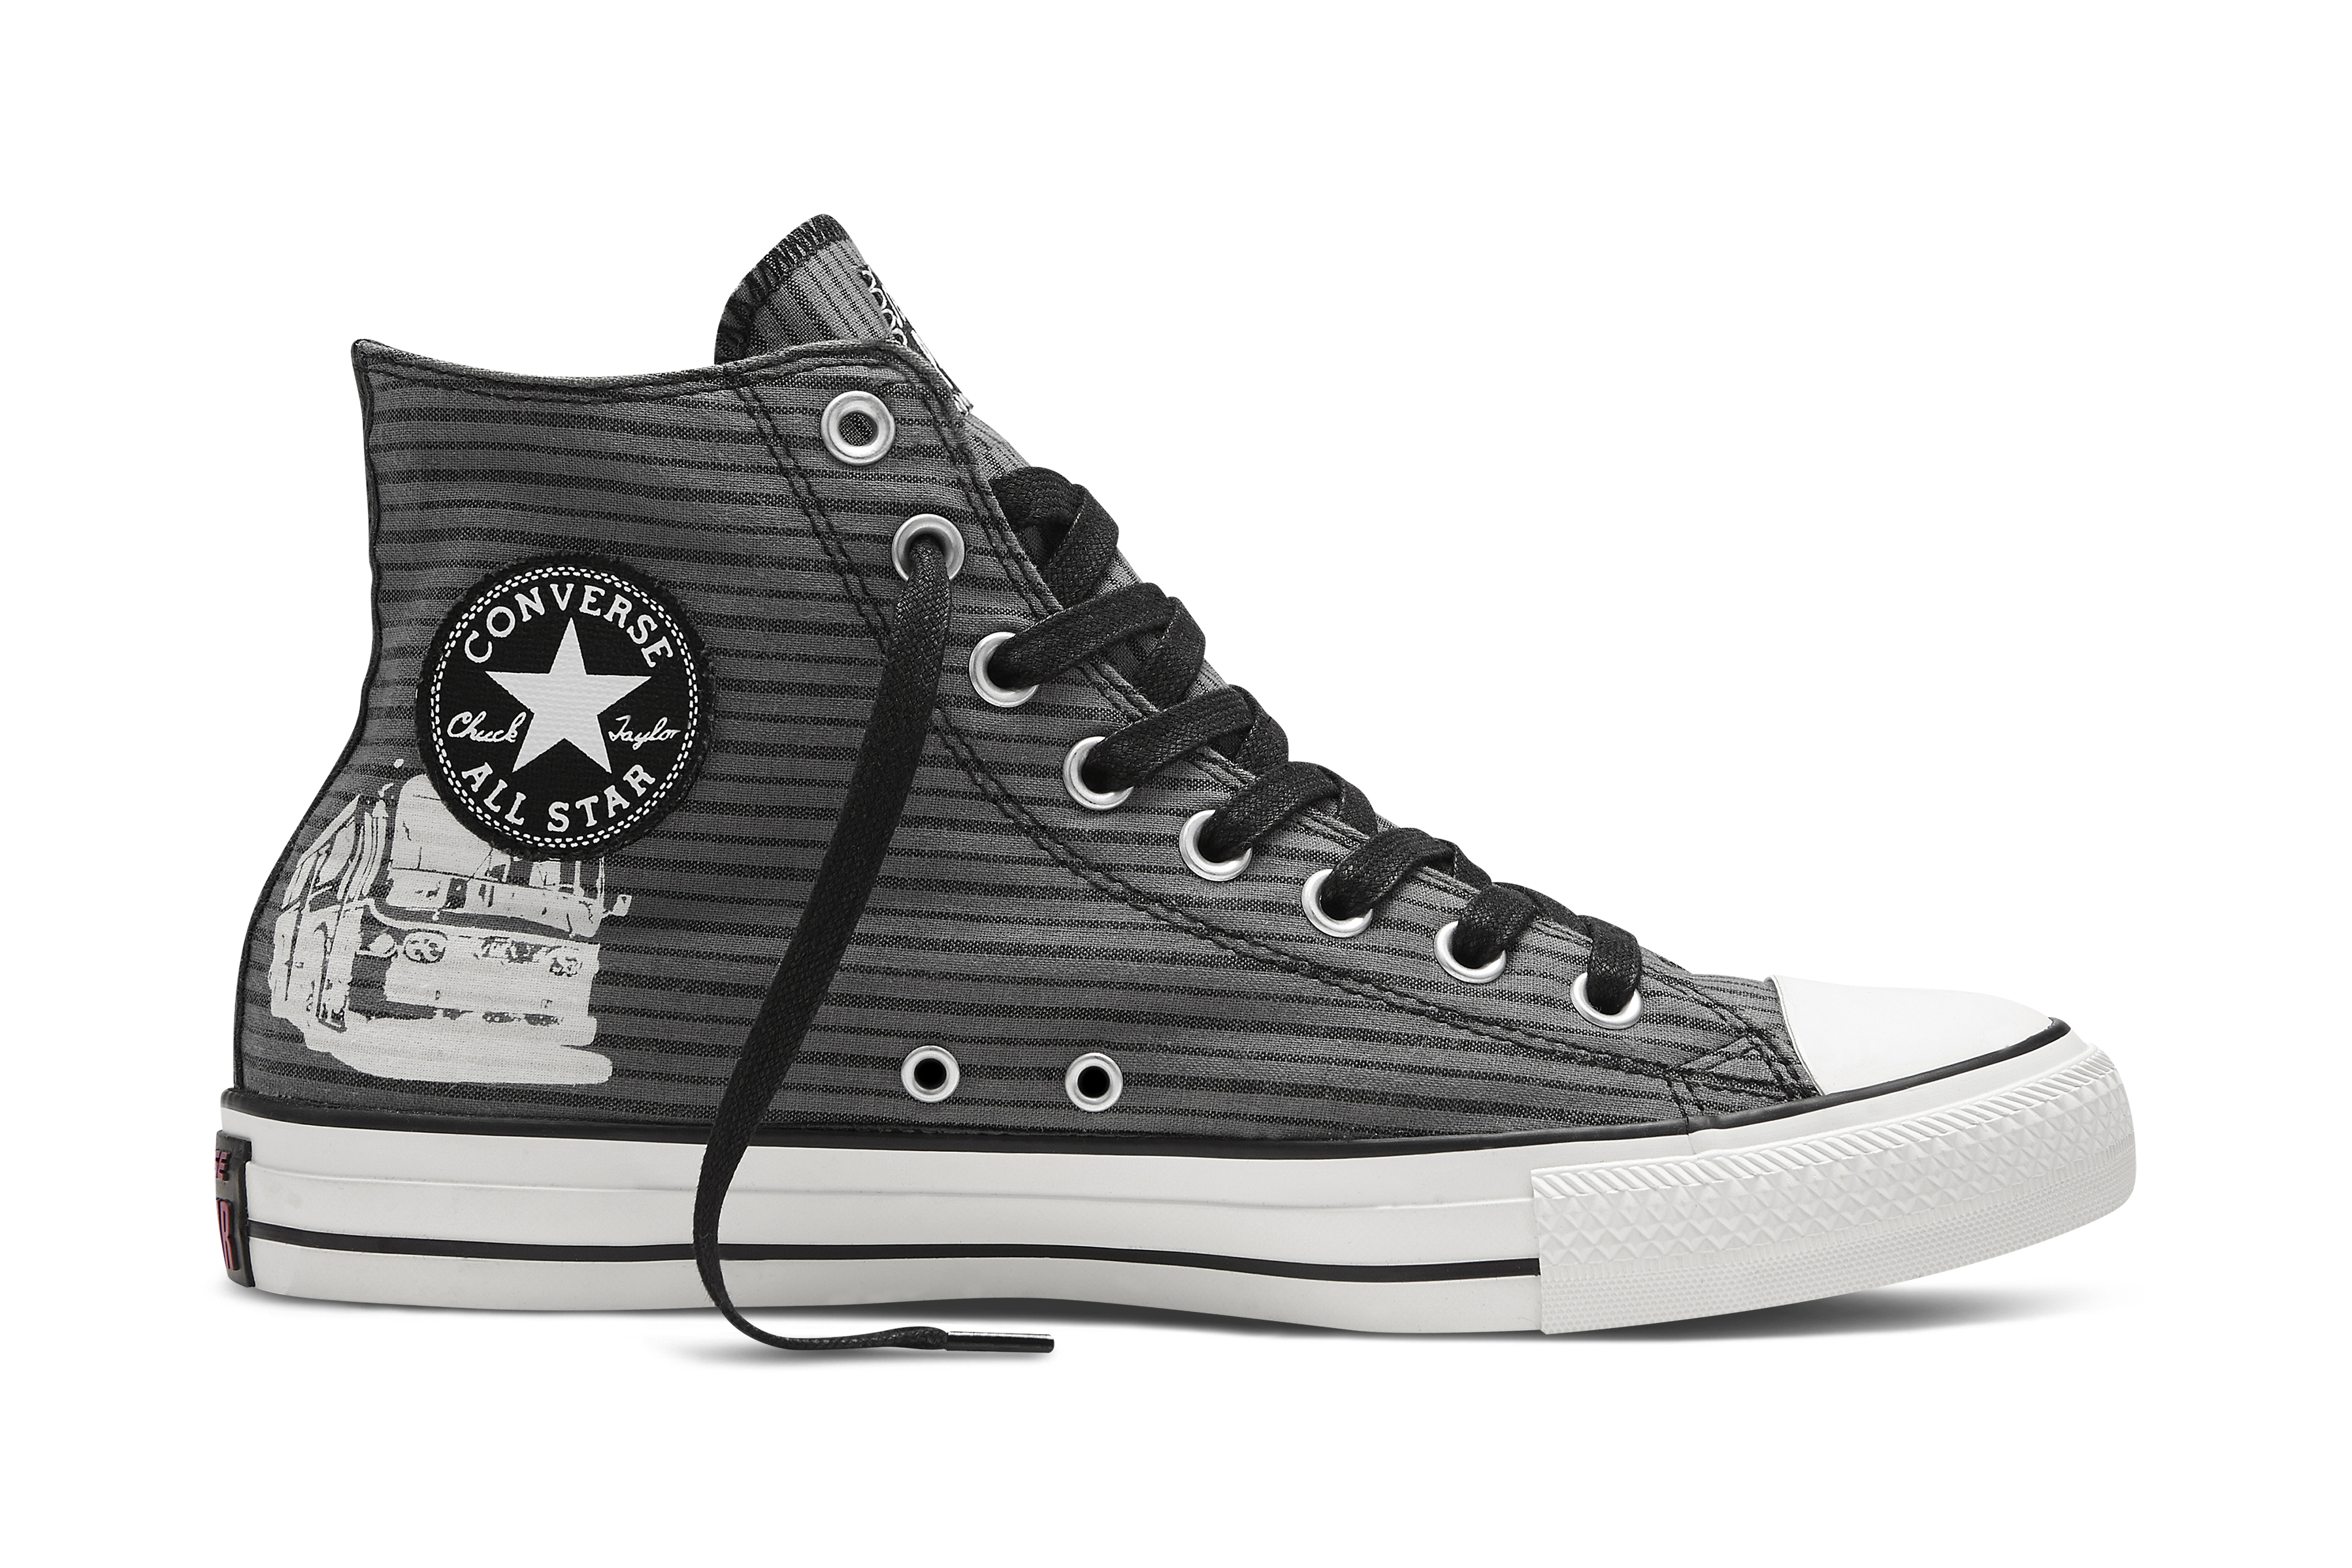 9ce831e1a60e The Spring 2016 Converse Chuck Taylor All Star Sex Pistols Collection will  be available for purchase starting January 15